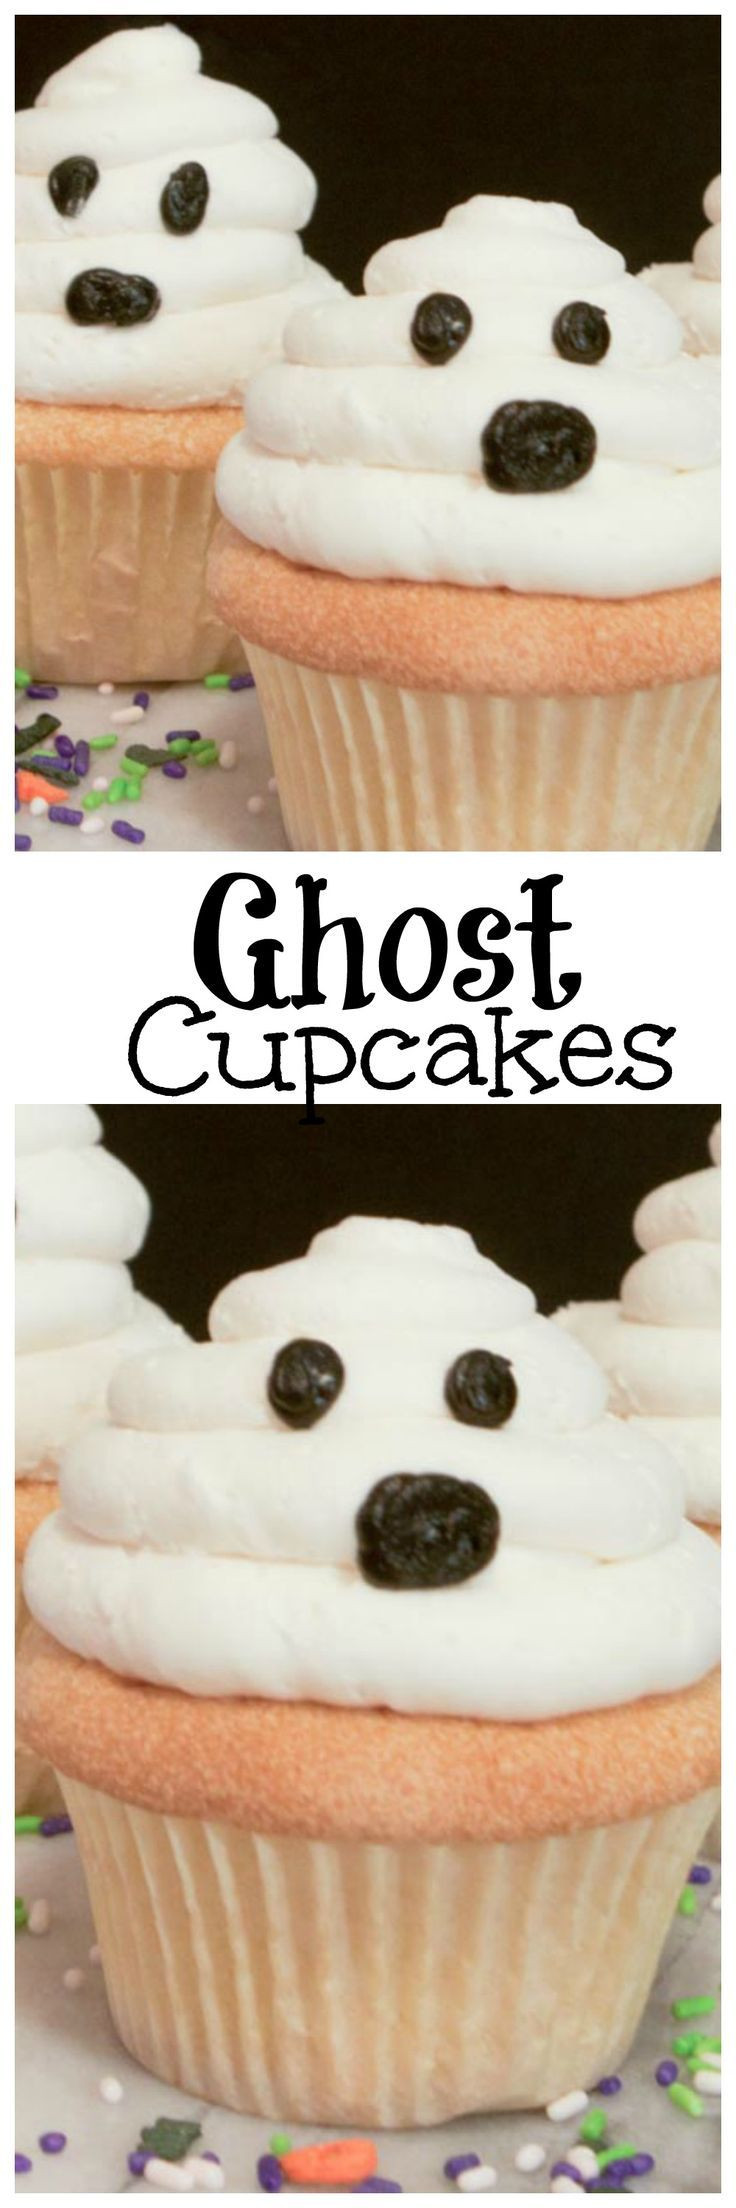 Halloween Cupcakes Pinterest  Best 20 Halloween cupcakes ideas on Pinterest